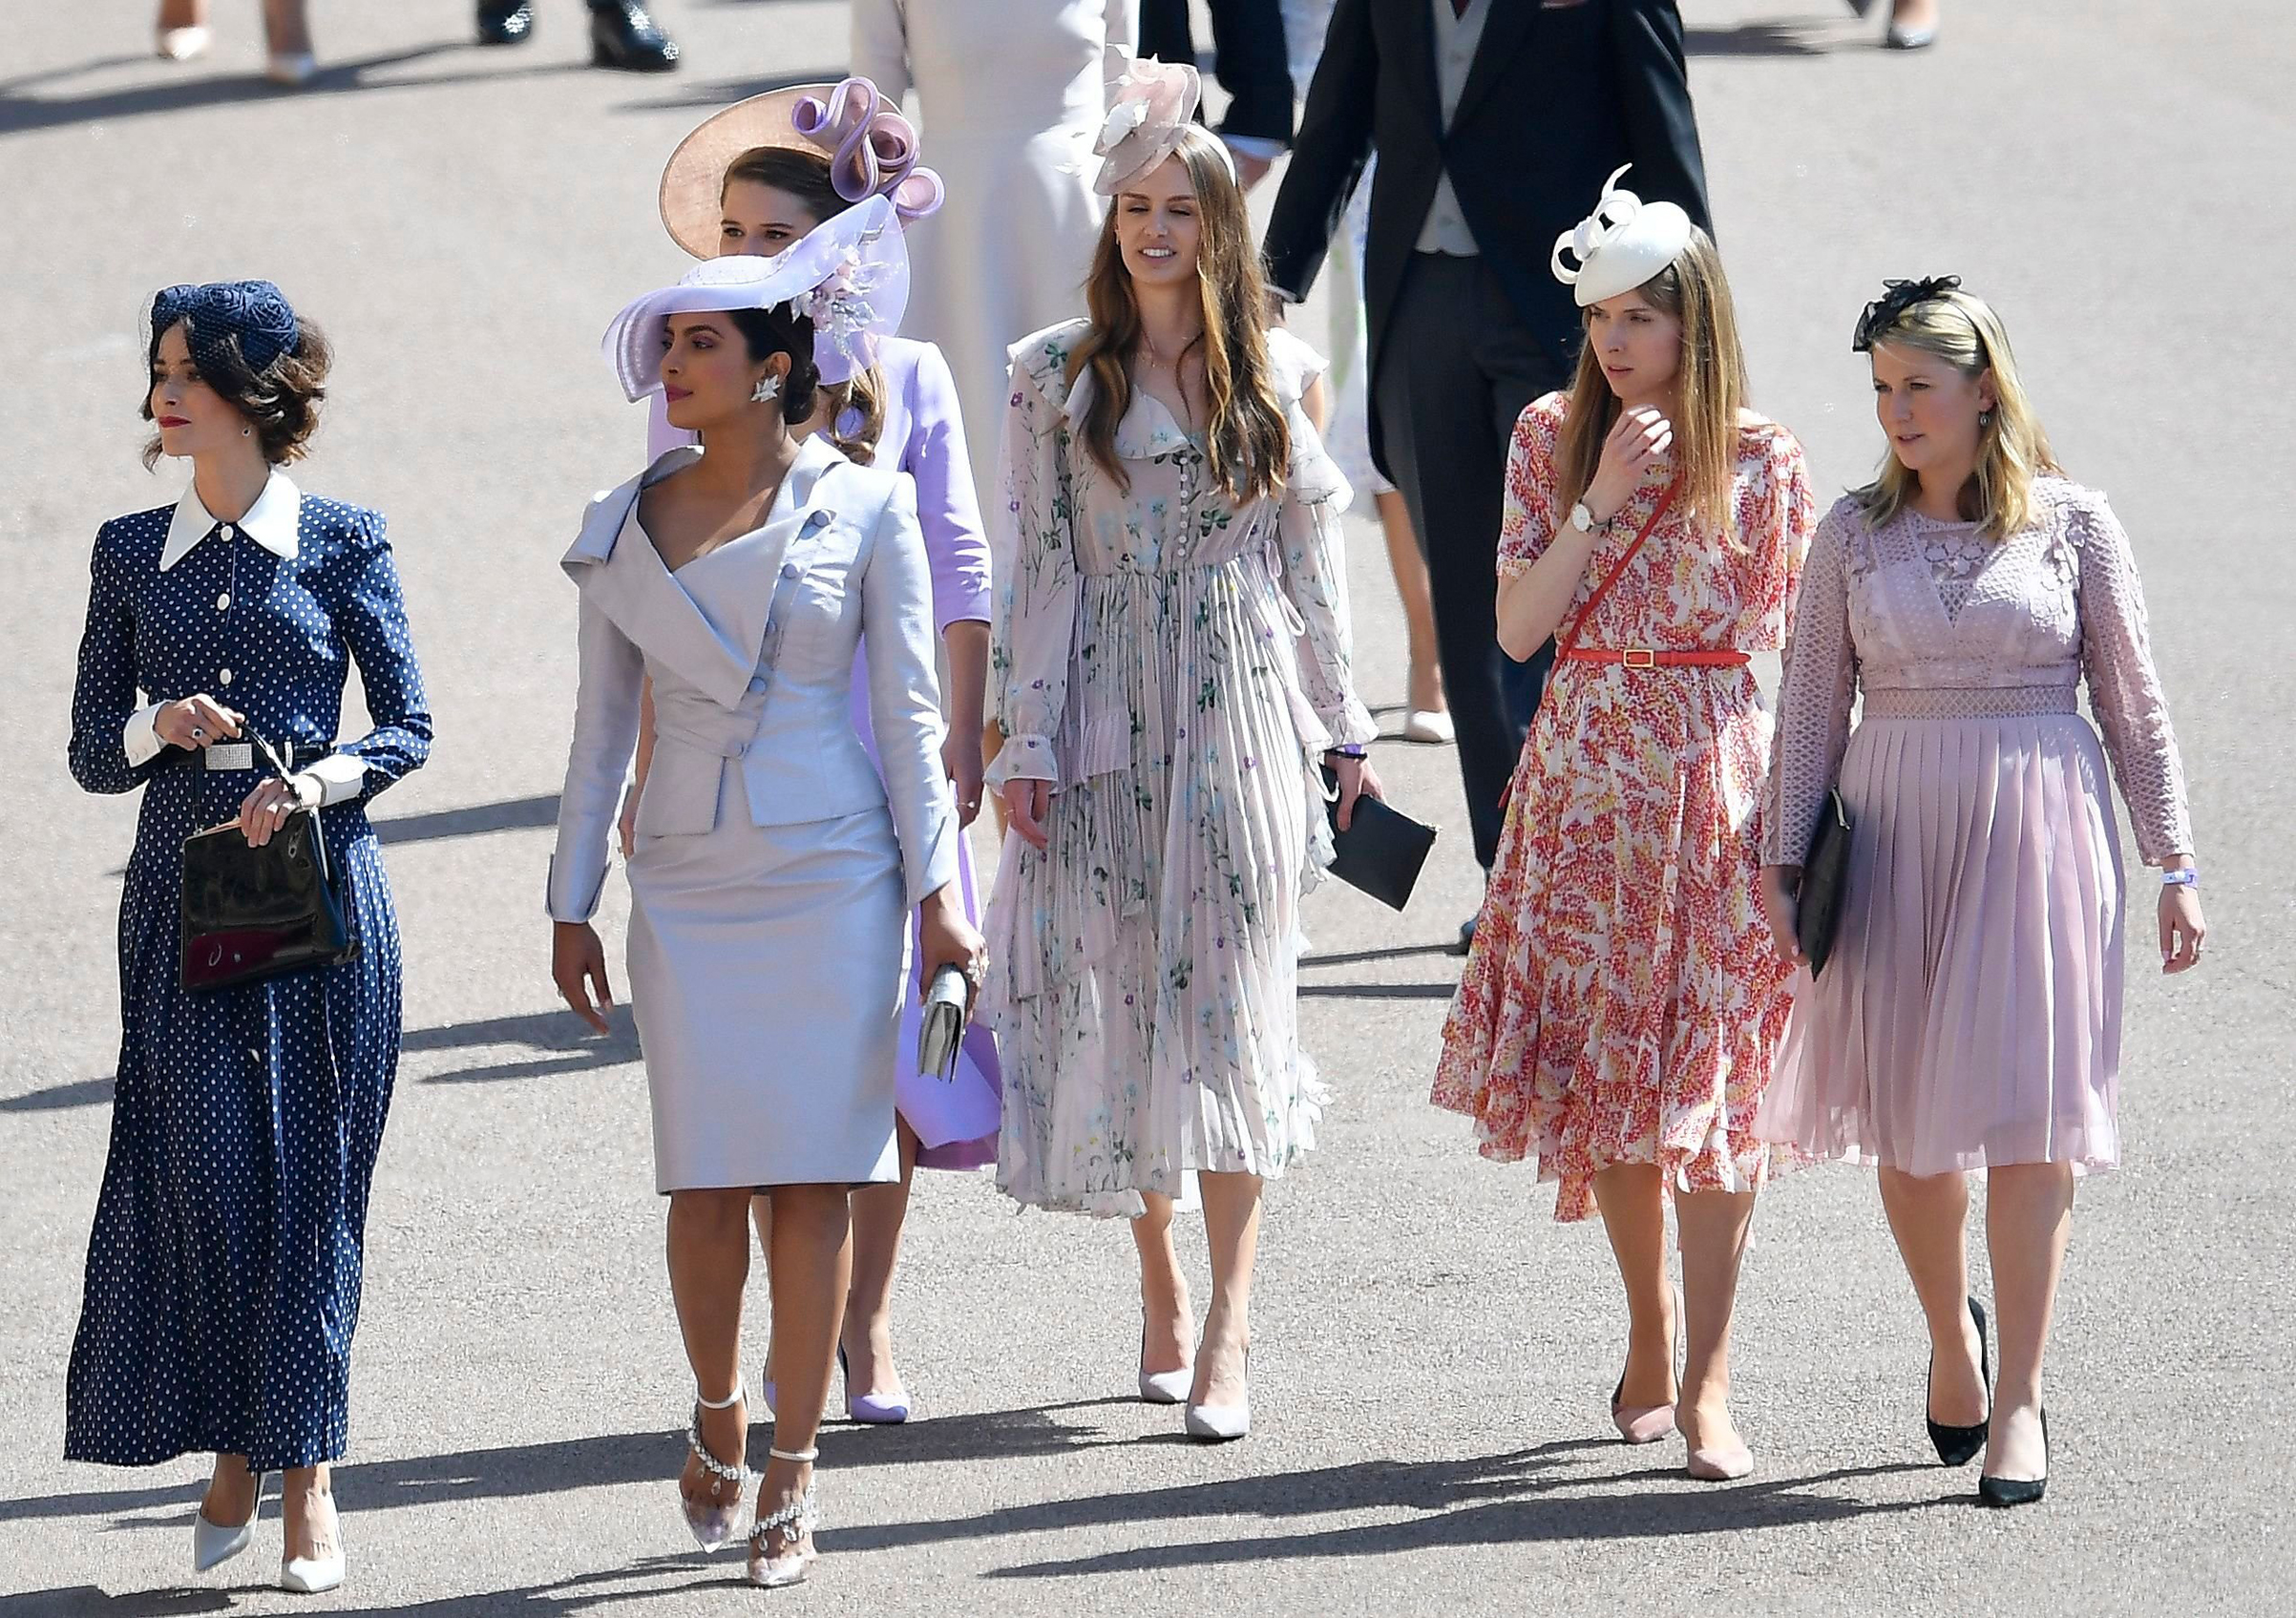 Priyanka Chopra (second from left) arrives for the royal wedding ceremony of Britain's Prince Harry and Meghan Markle at St George's Chapel in Windsor Castle, May 19, 2018.